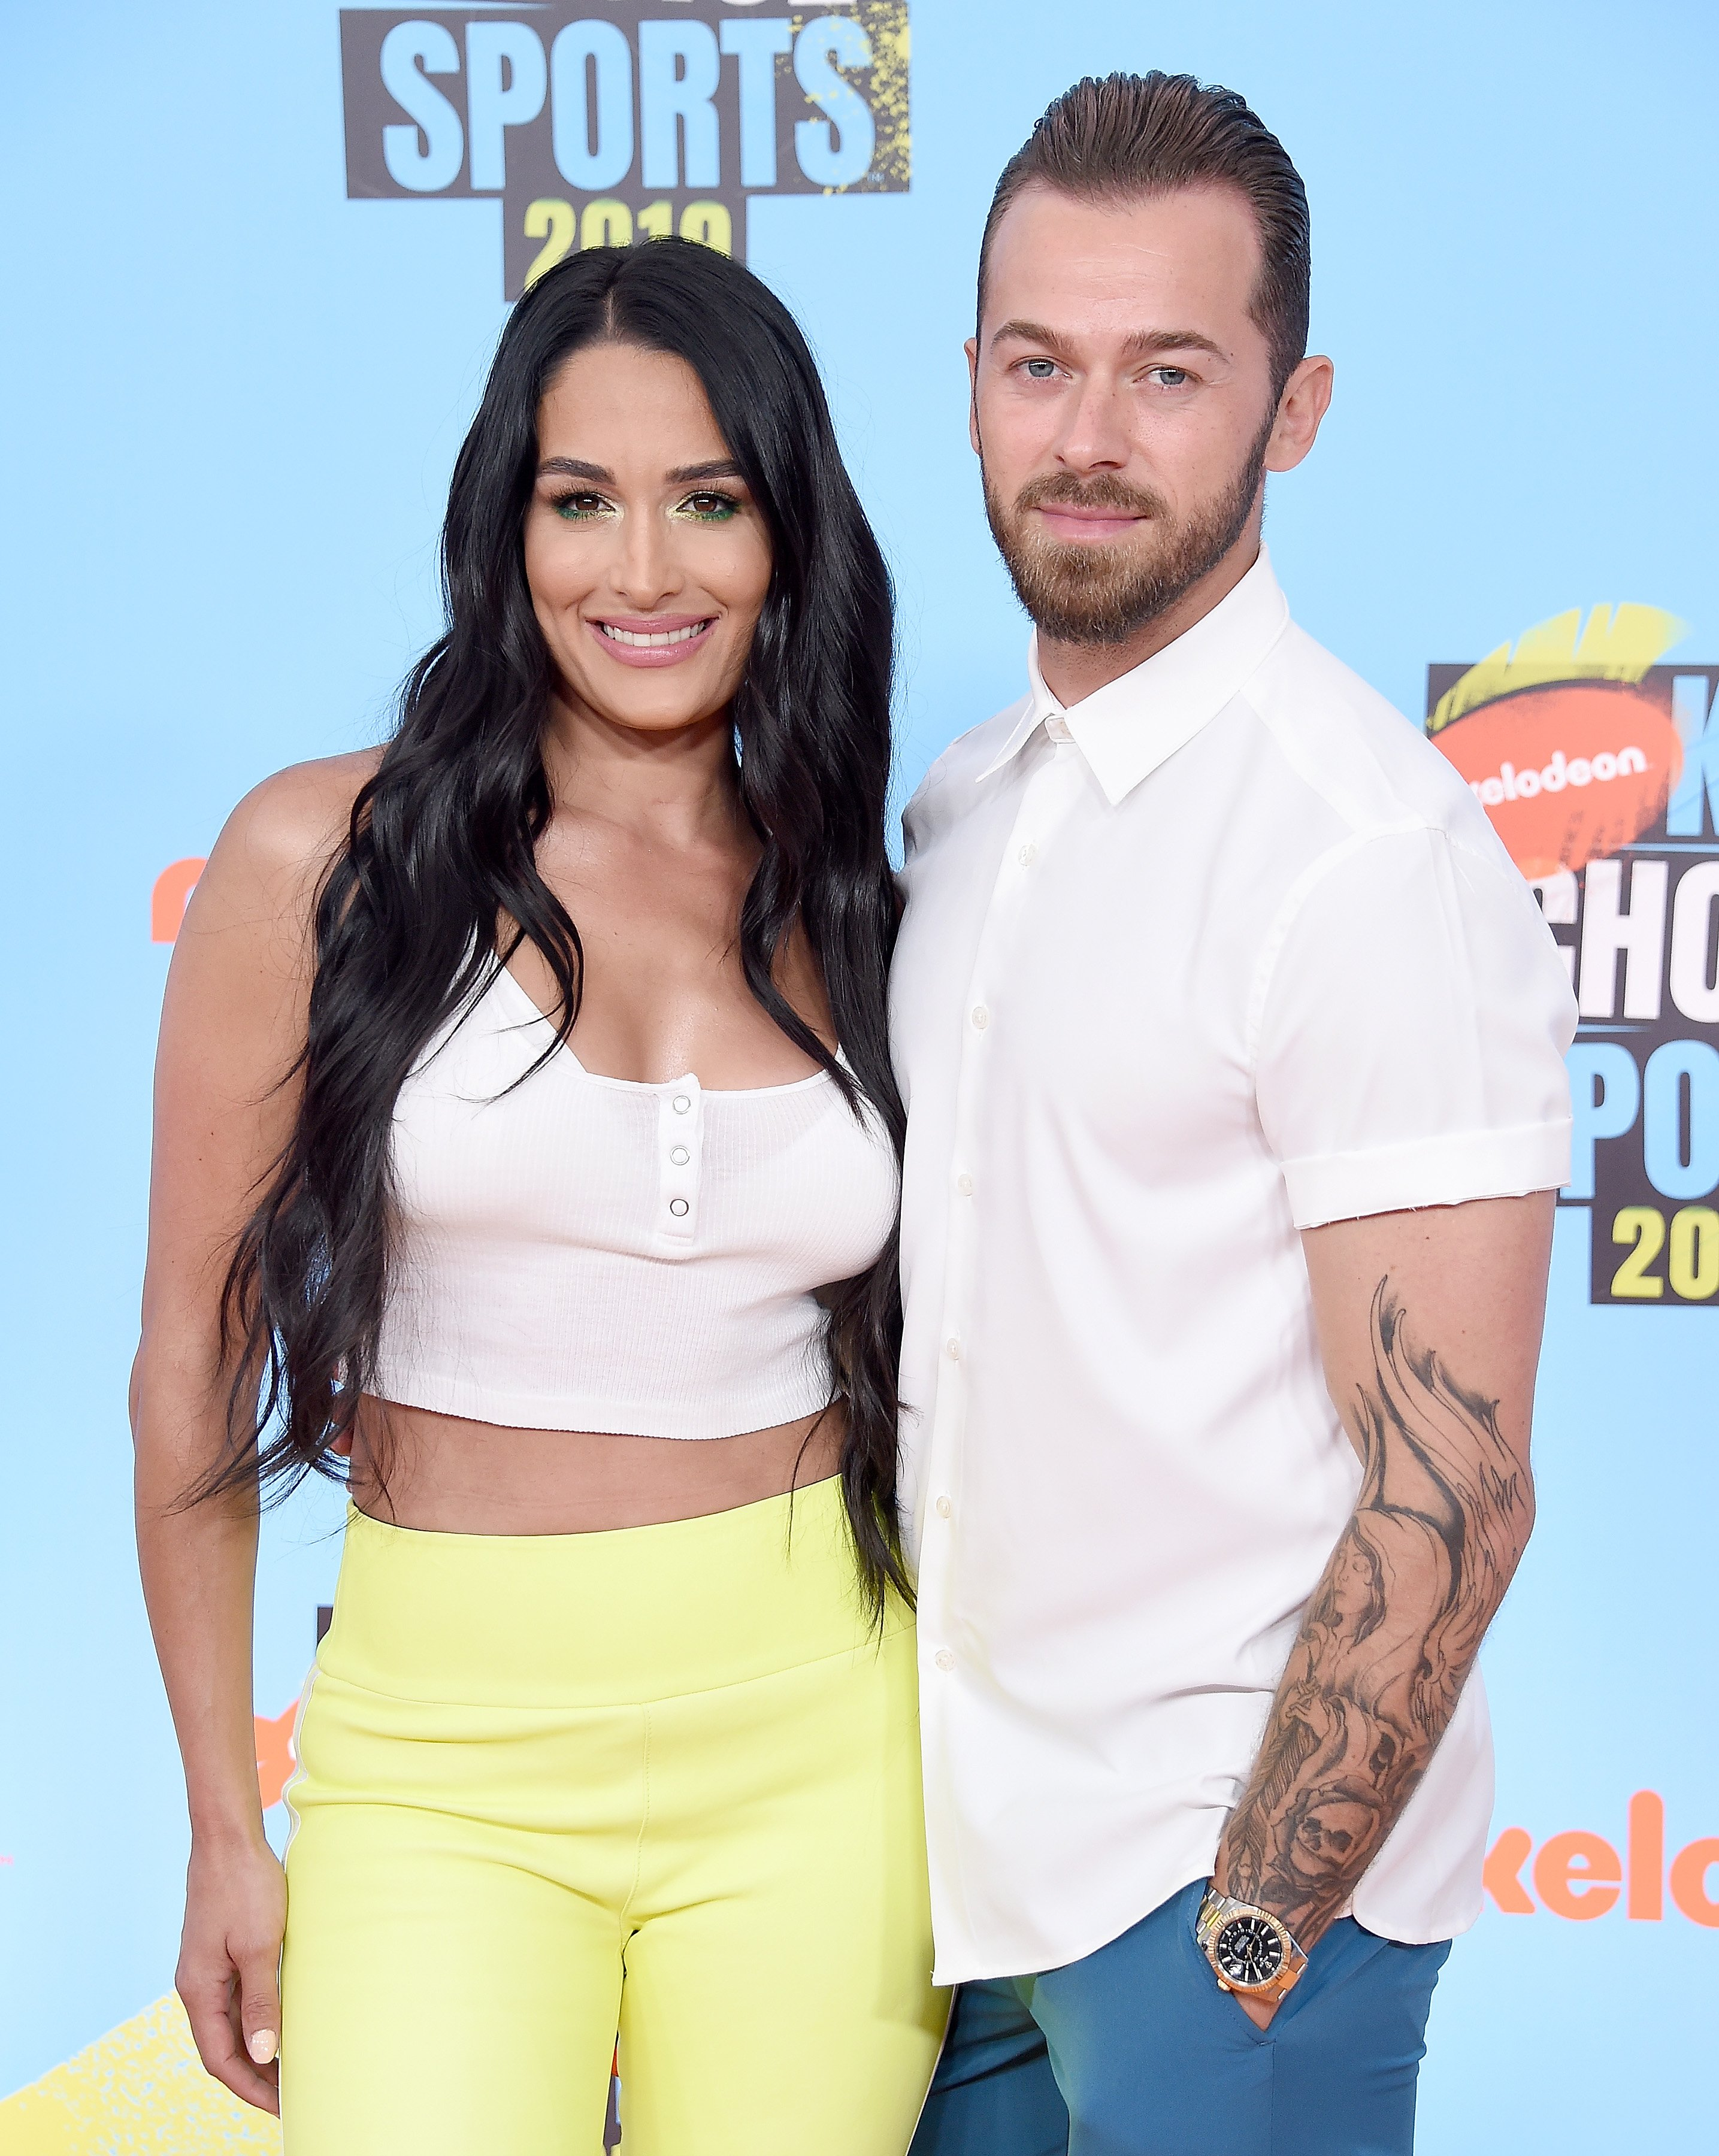 """Total Bellas"" star Nikki Bella with fiance Artem Chigvintsev attends the 2019 Nickelodeon's Kids Choice Sports in Santa Monica, California. 